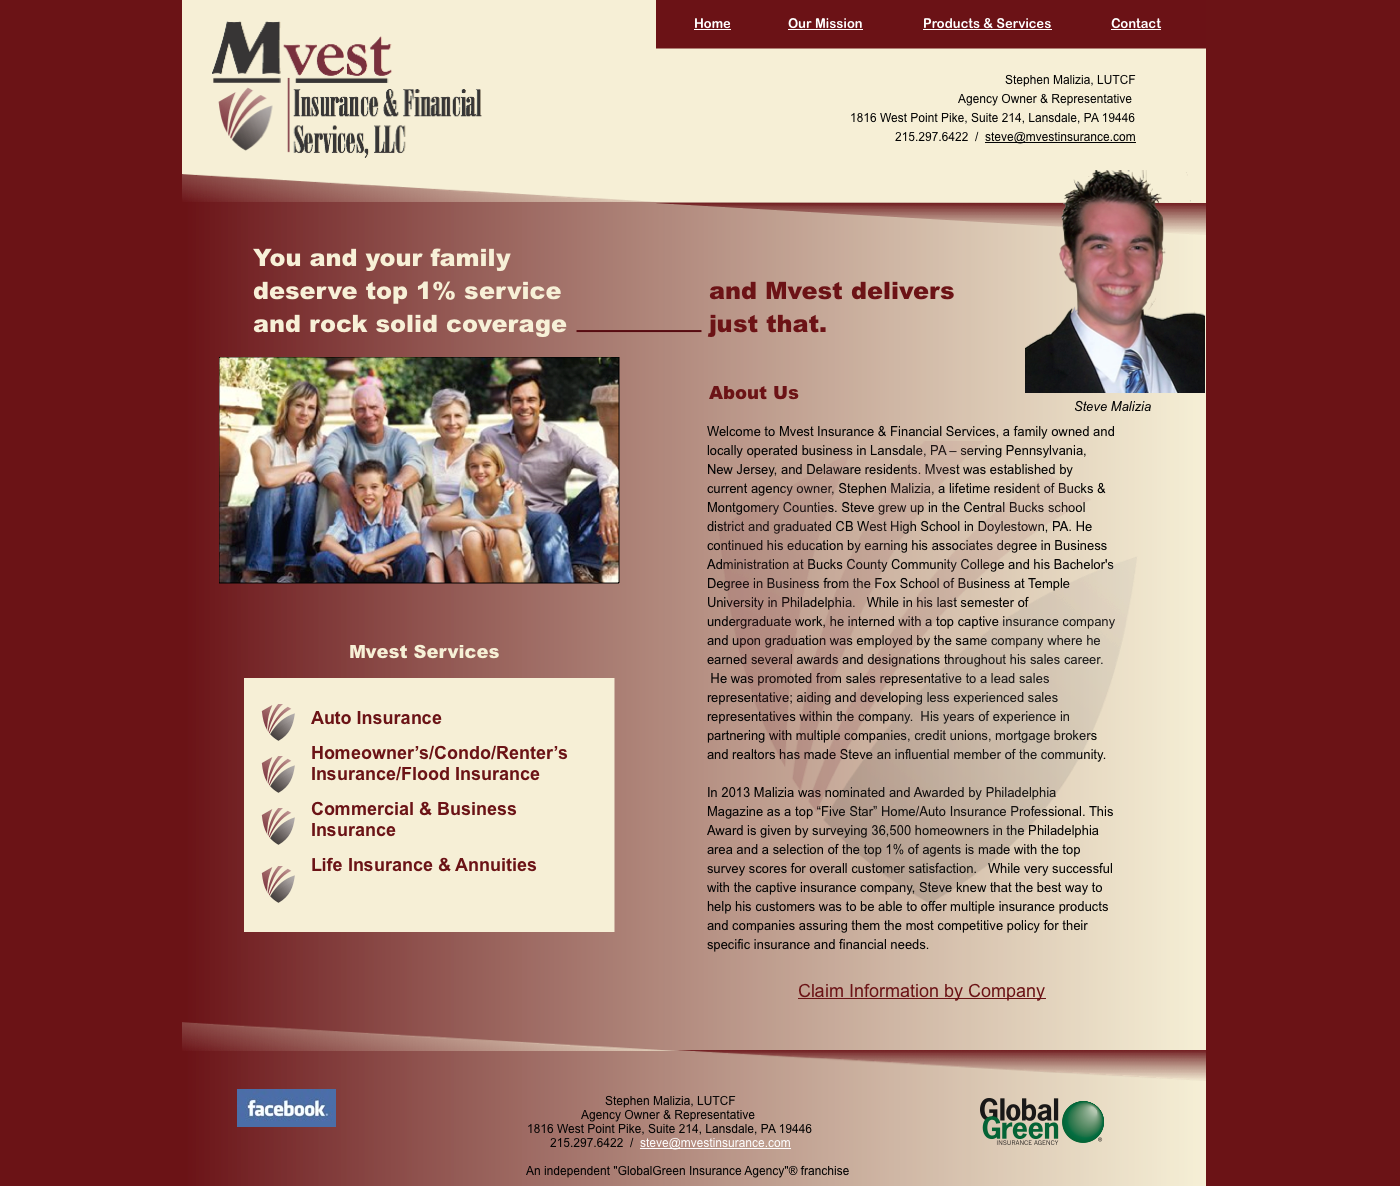 mVest Financial Services